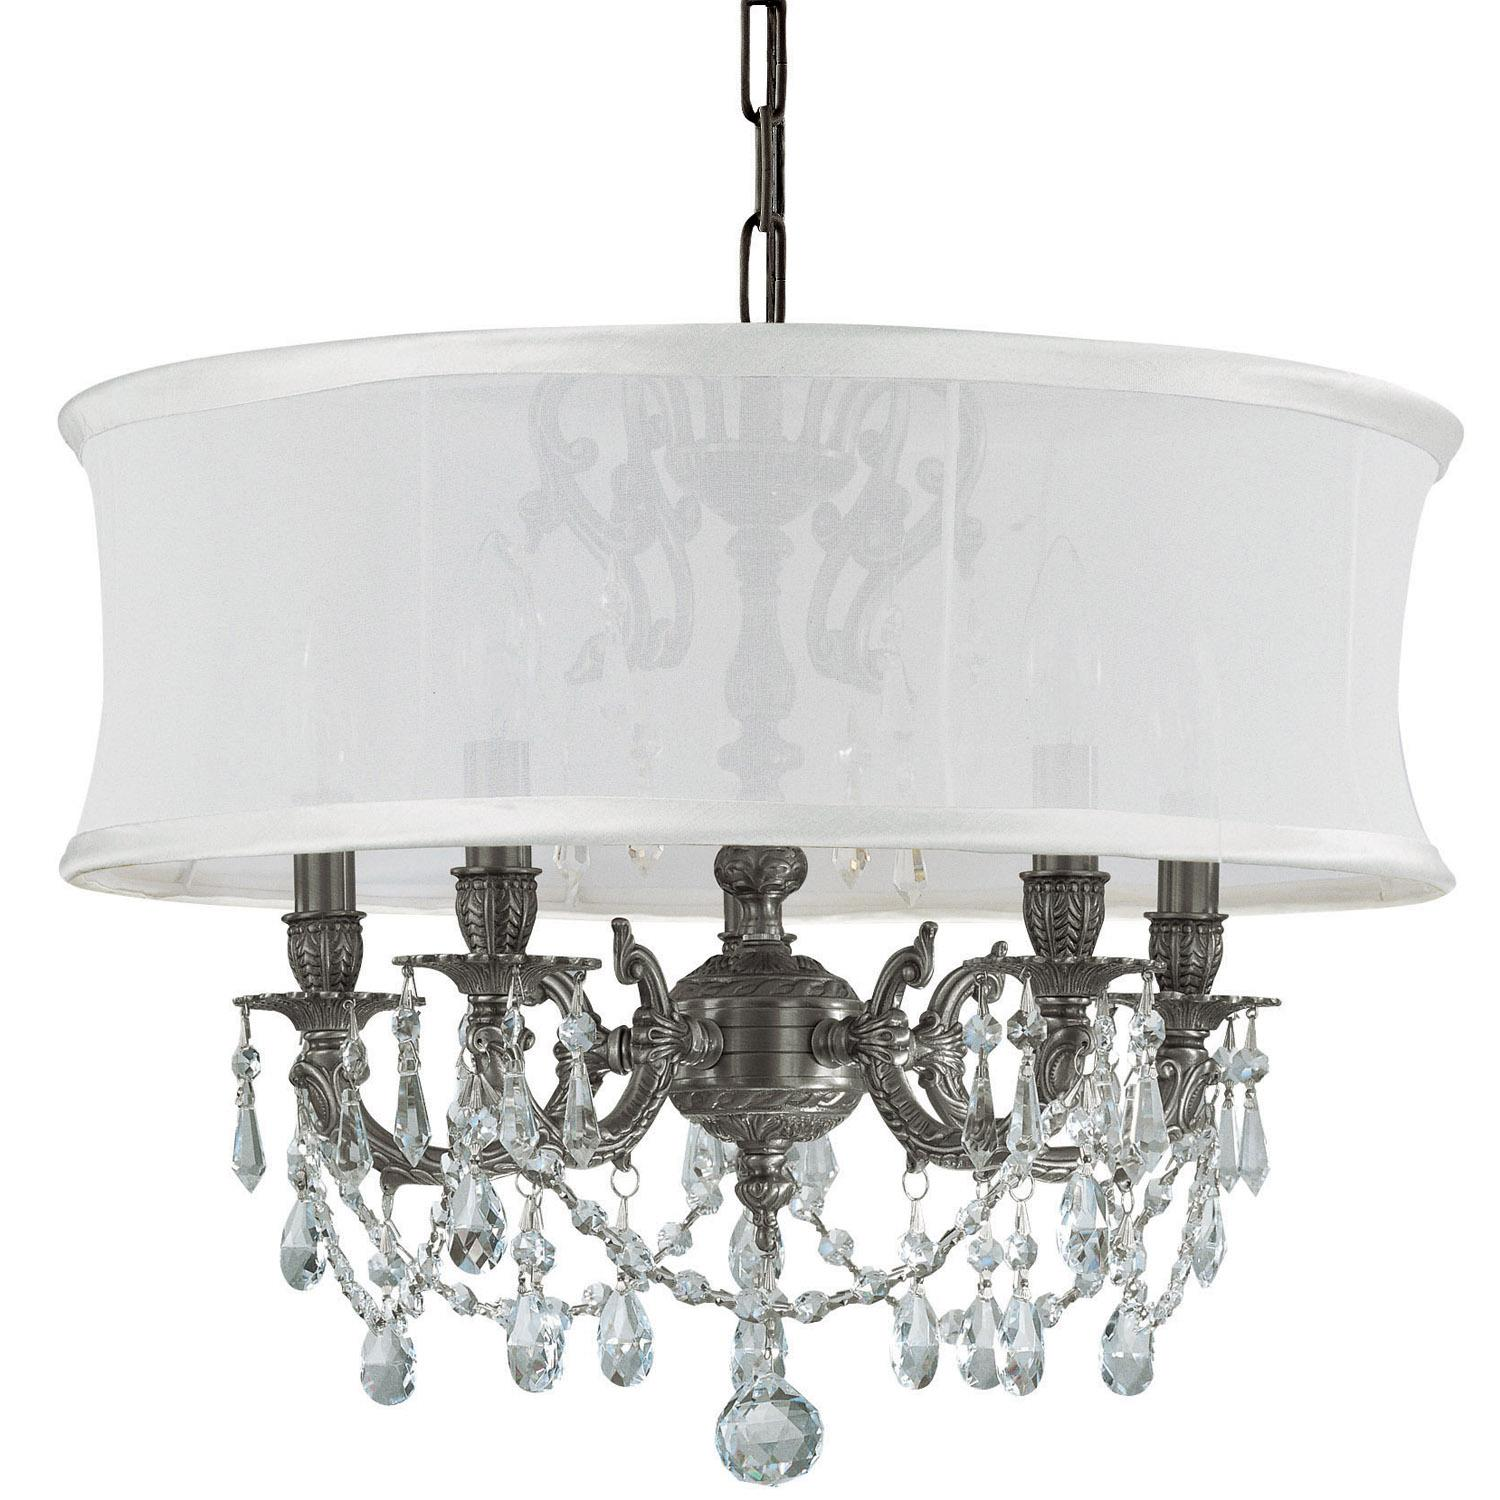 Crystorama 5535-PW-SMW-CLM Ornate Pewter chandelier with Majestic Wood Polish Crystal Chandelier with a Smooth Antique White Silk Shade